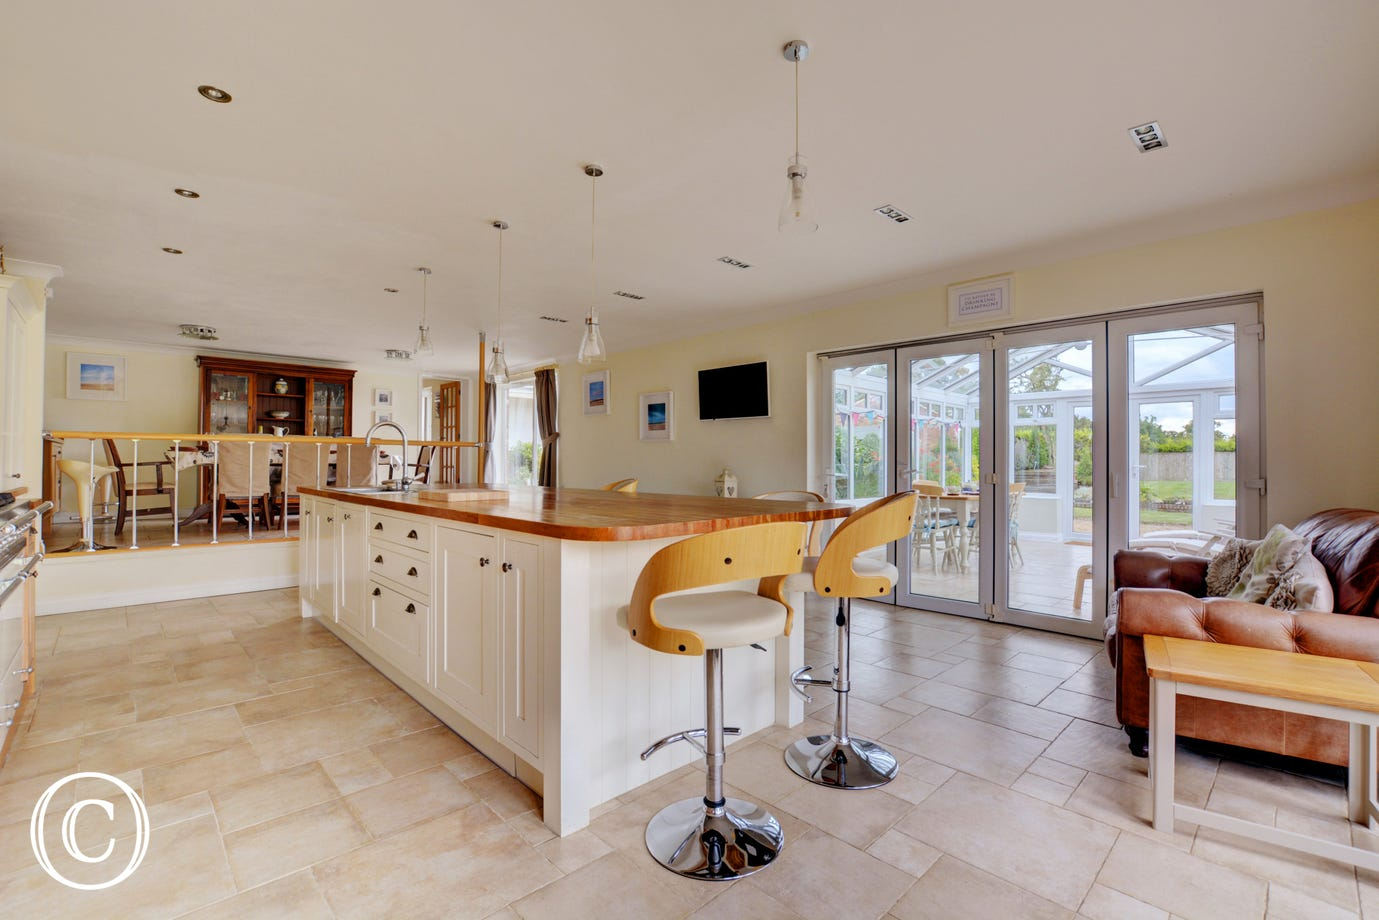 Sociable seating within the kitchen, sit and watch whilst dinner is prepared!